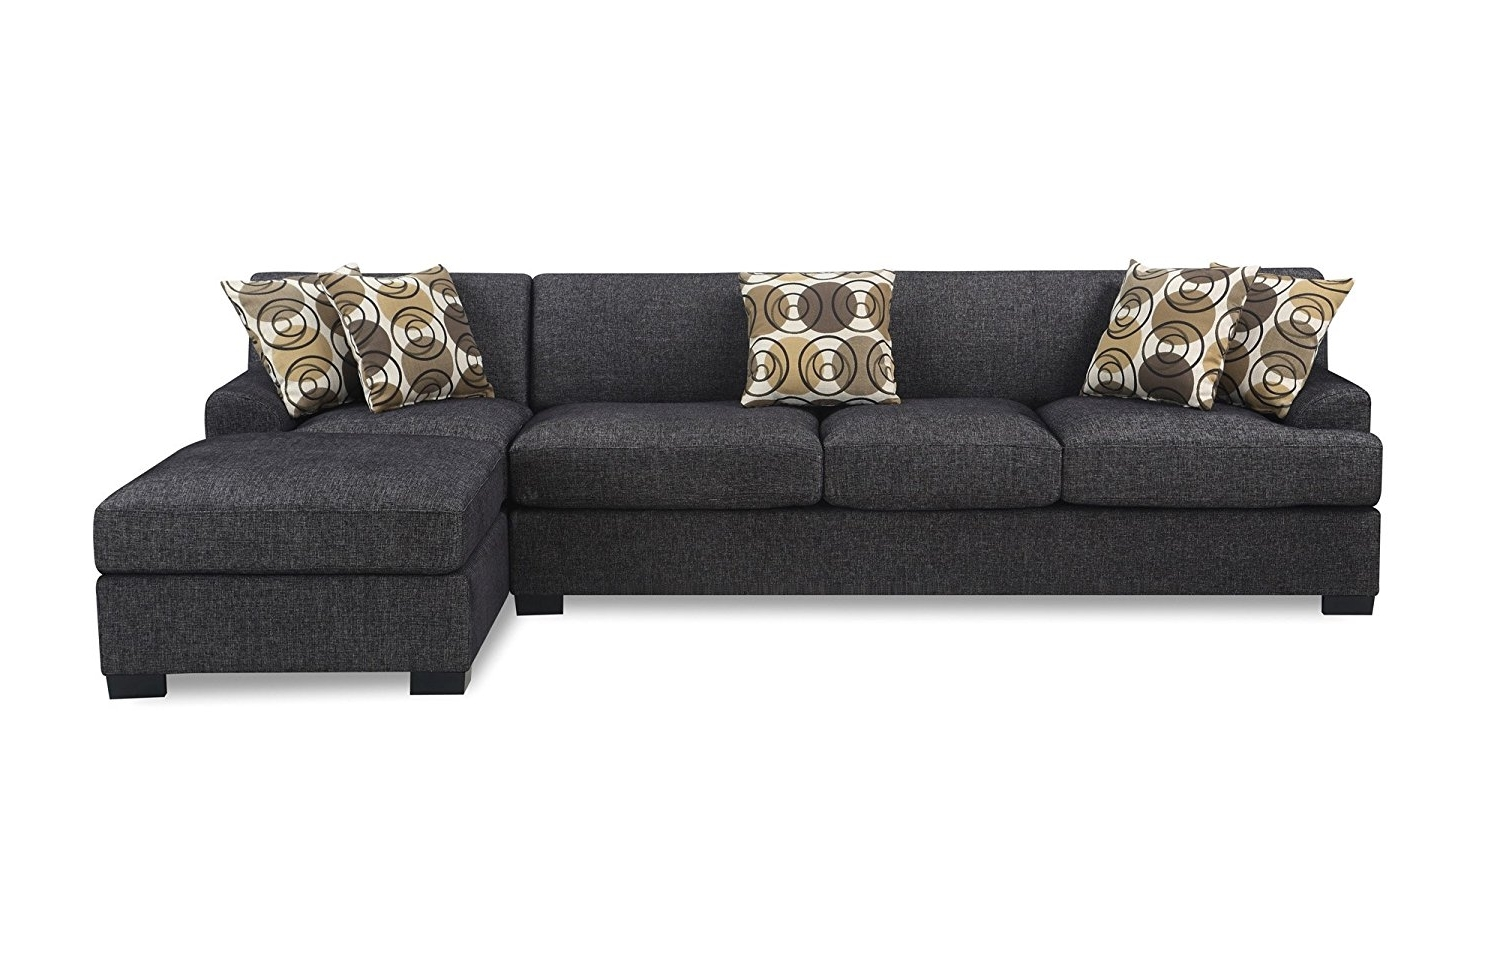 Latest Long Chaise Sofas Within Amazon: Bobkona Poundex Benford Collection Faux Linen Chaise (View 4 of 15)